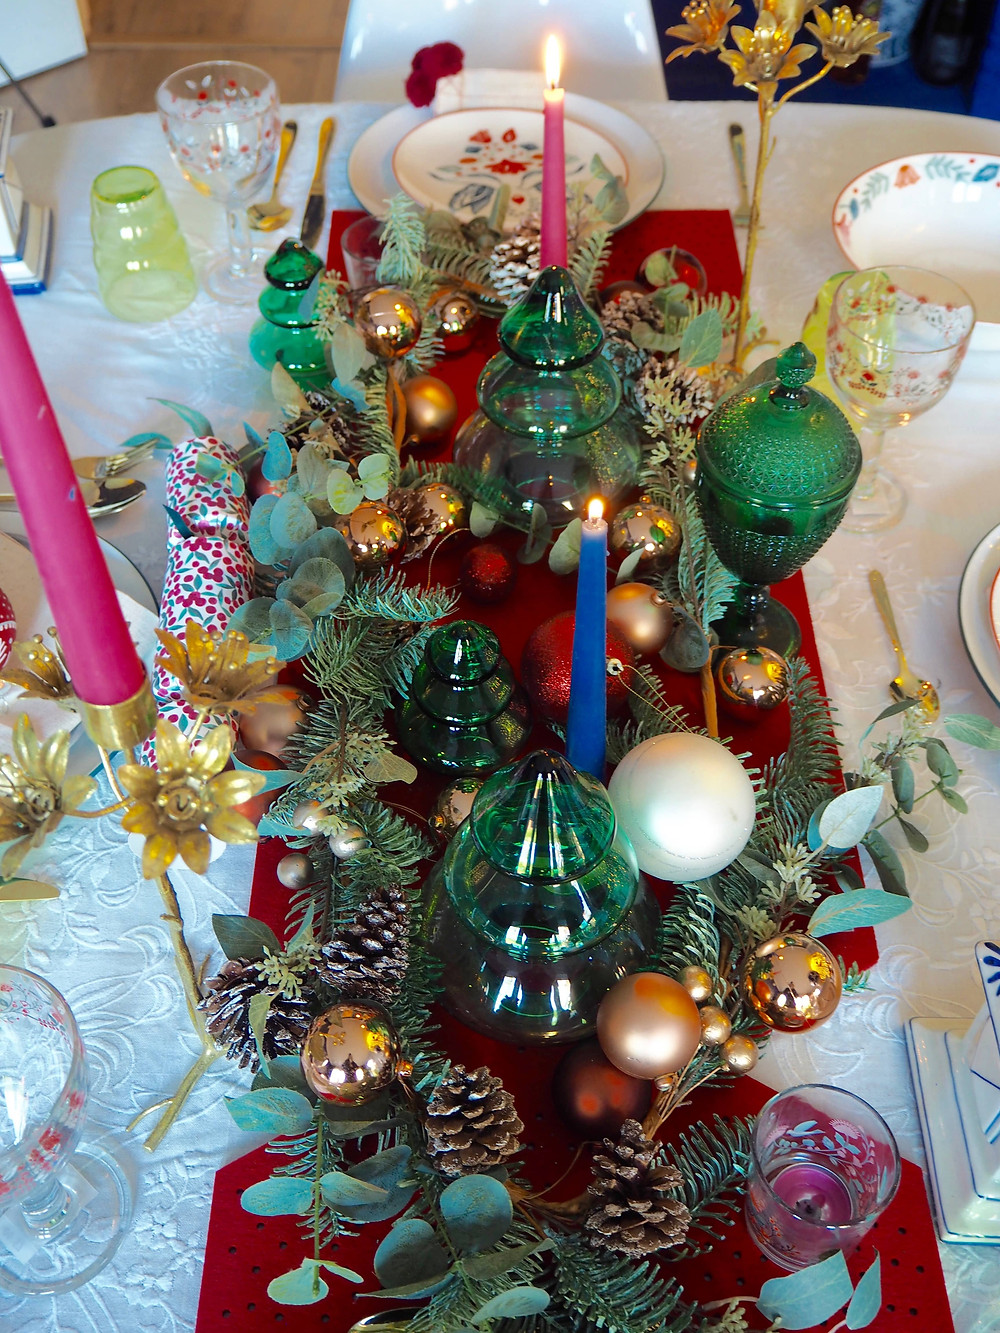 How to set your Christmas table with John Lewis Christmas crackers in pink and green with blue background and fairy lights, felt cracker centrepiece from the Folklore collection. Gold cutlery table setting. How to make a centrepiece with baubles and ornaments